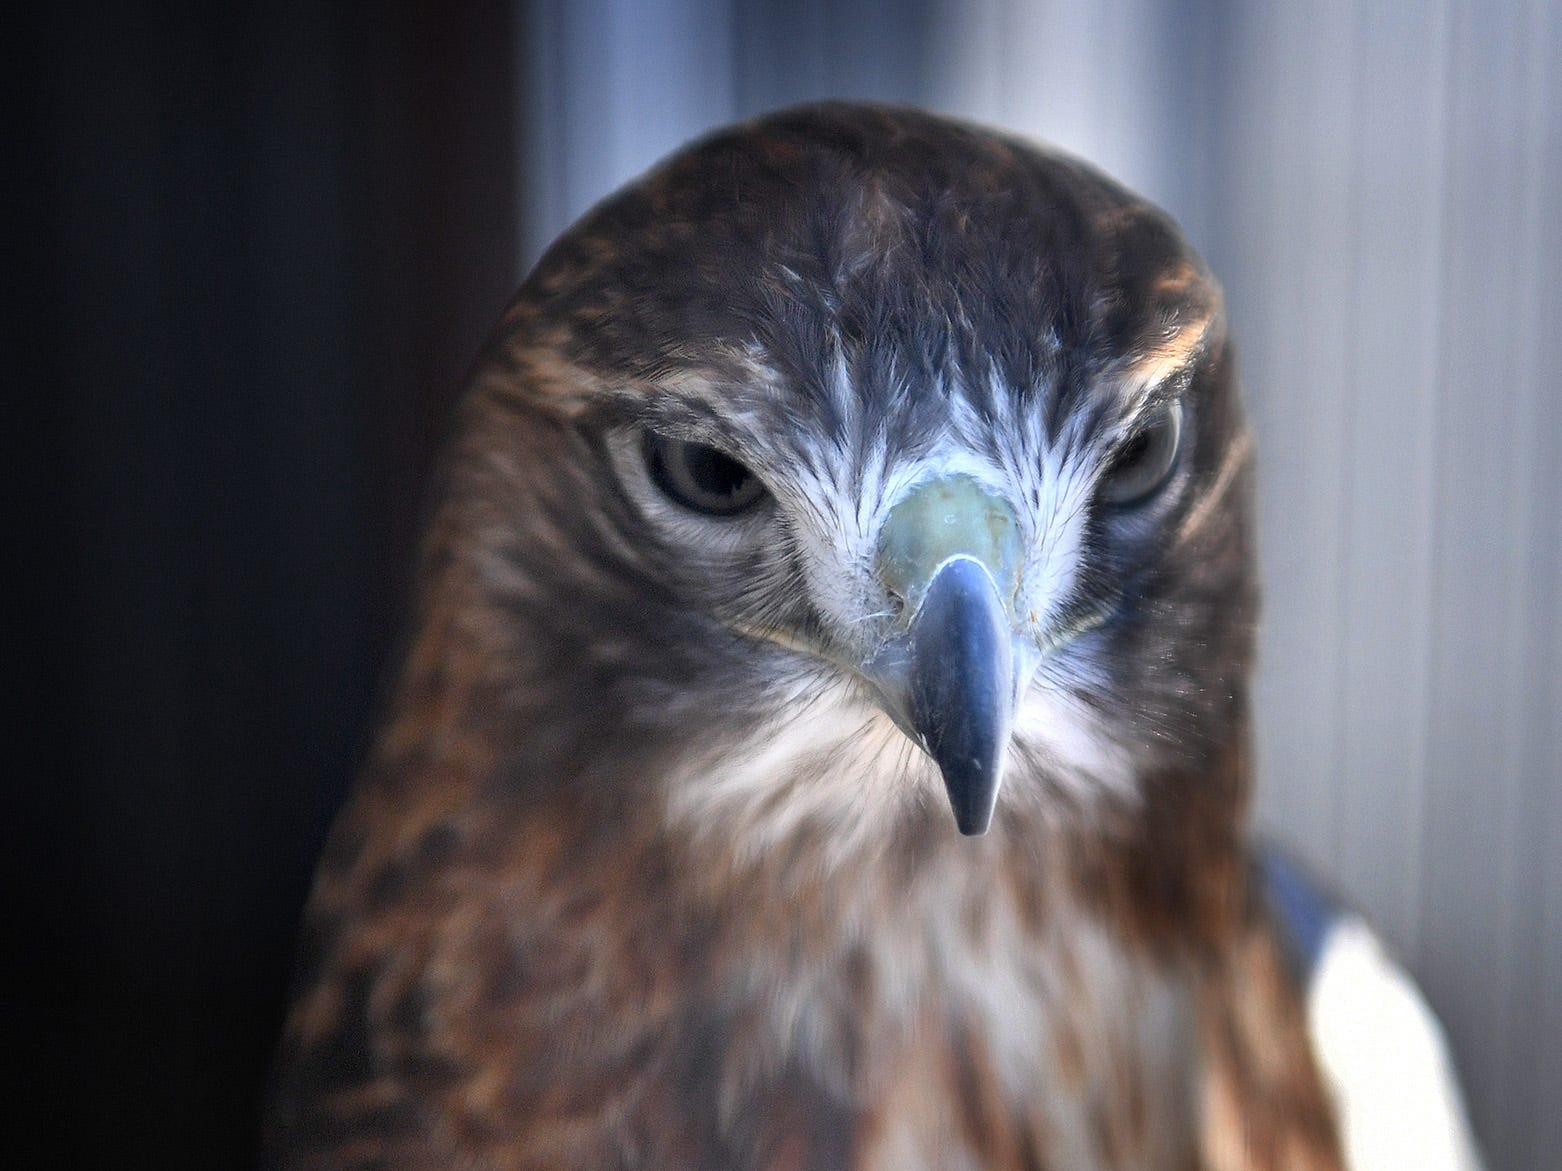 Teetonka is a Red-Tailed Hawk that resides in the new Exhibit and Education building at Wild Bird Rescue. The facility houses about ten ambassador birds and is open to the public.